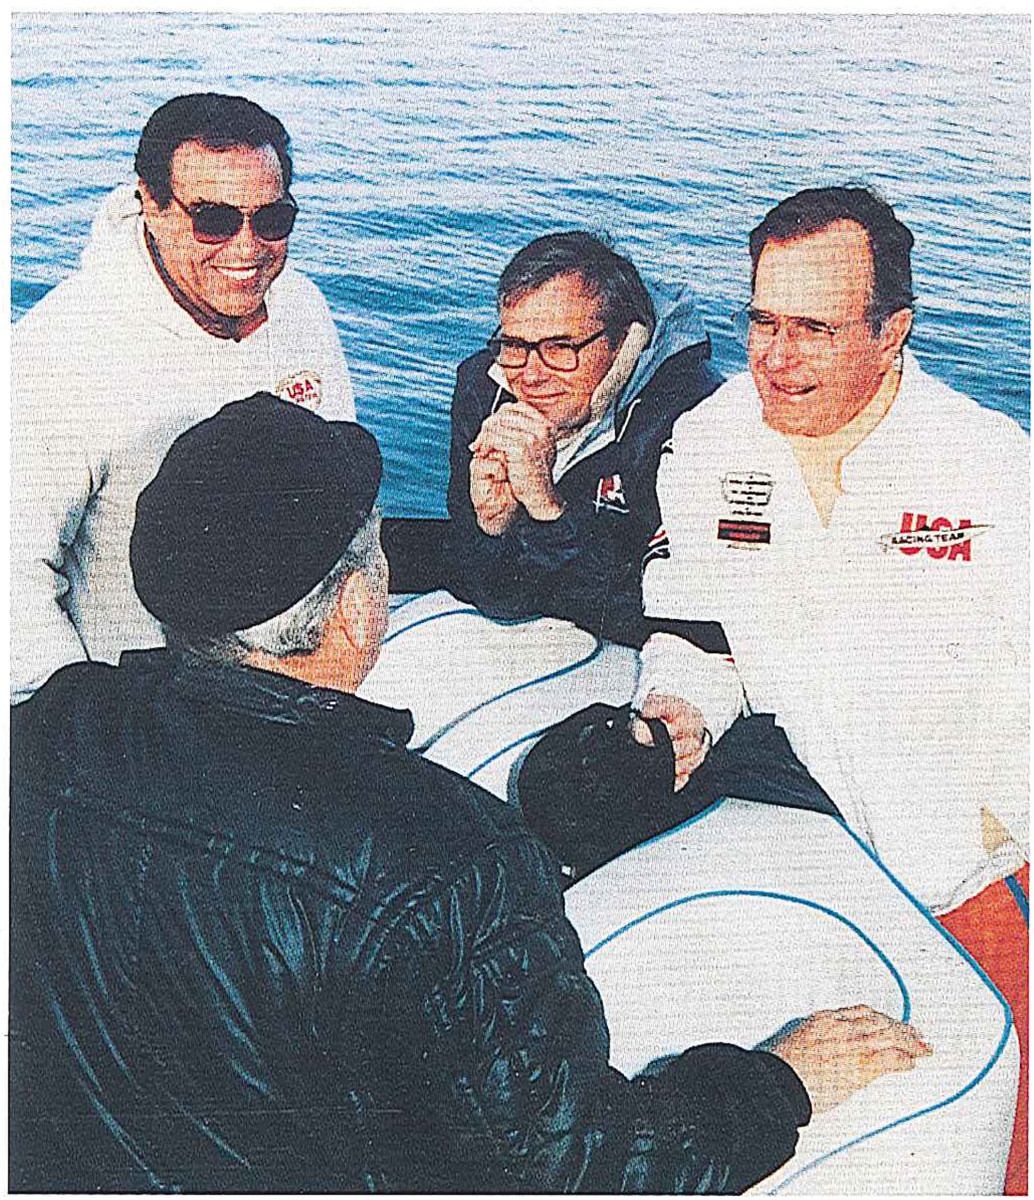 George H.W. Bush, right, was a close friend who initially threw his weight behind the murder investigation.